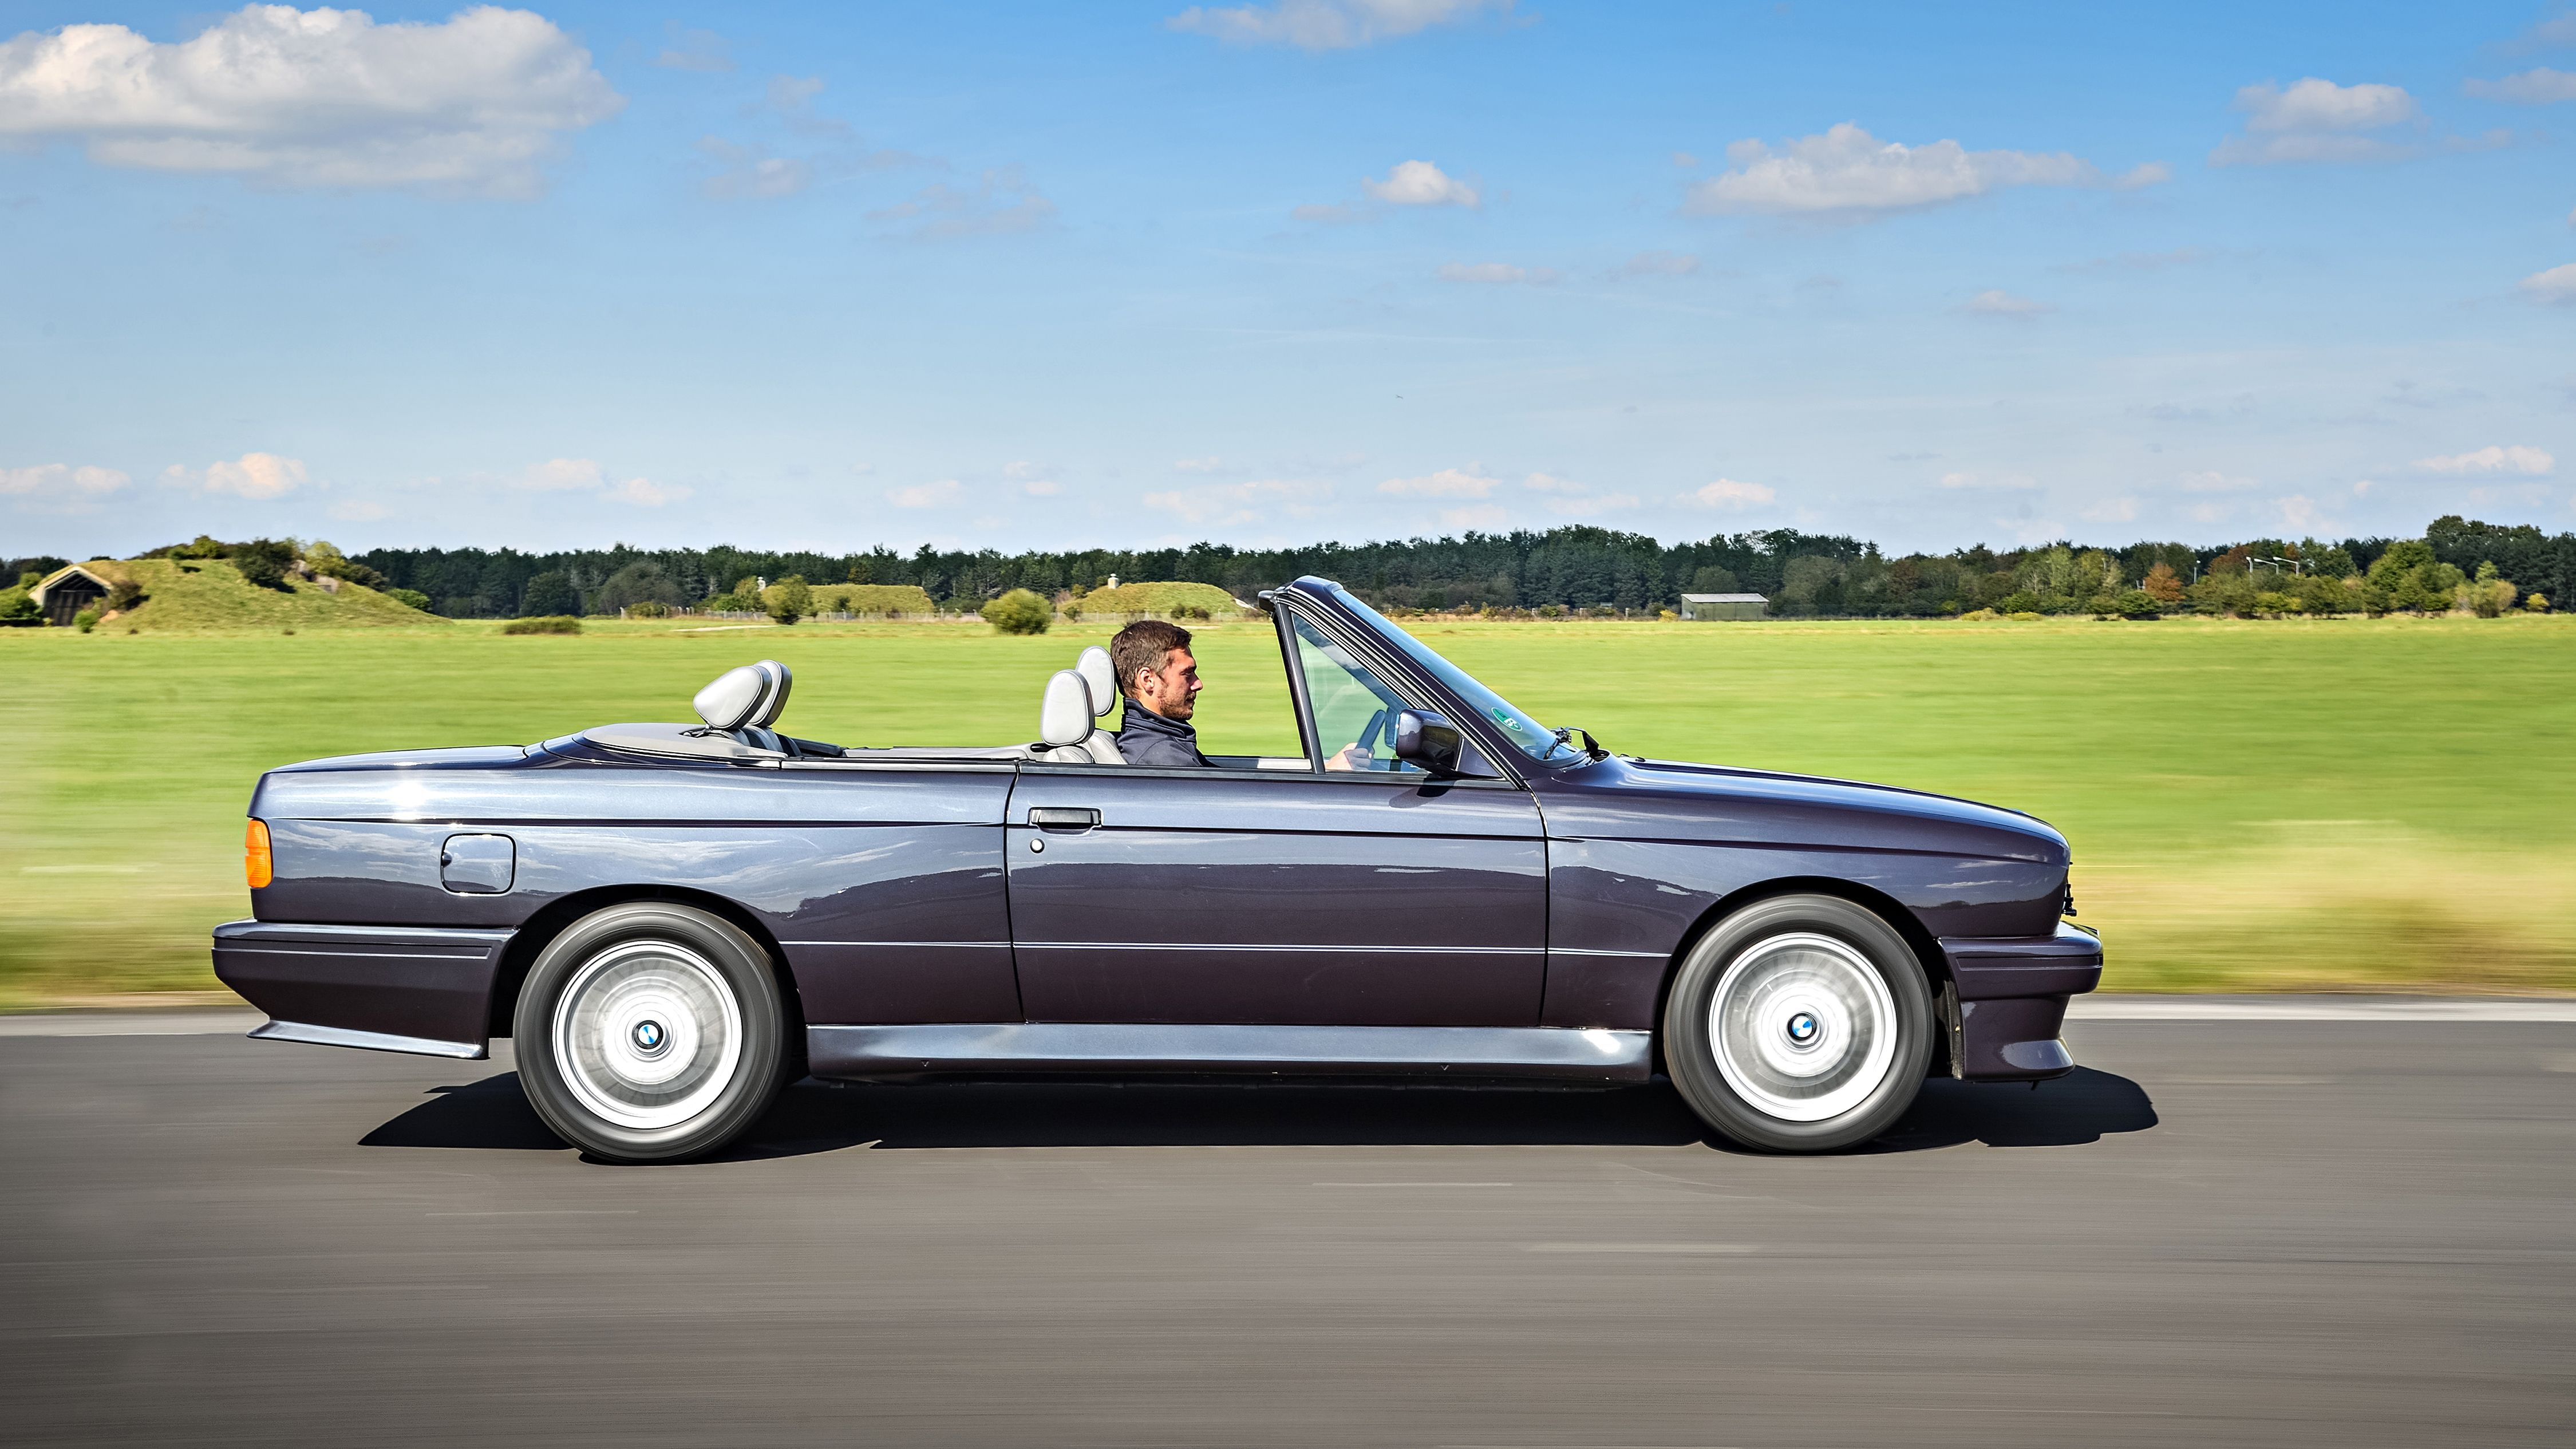 BMW M3 Cabrio (E30) 1988 | BMW | Pinterest | E30, BMW M3 and BMW